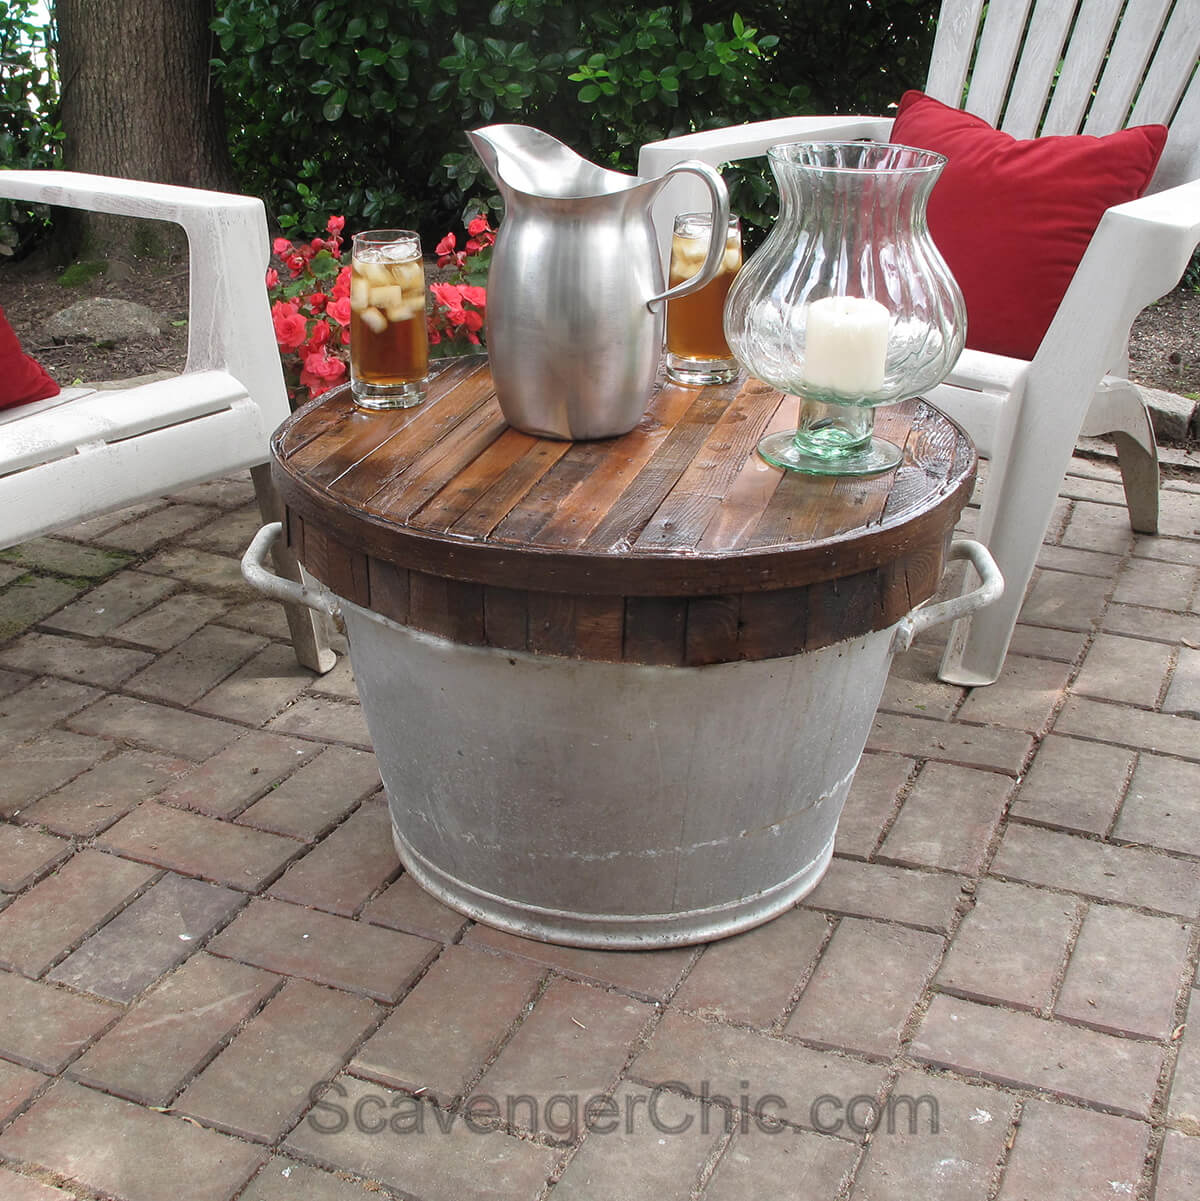 Weatherproof Outside Table with Galvanized Bucket Base